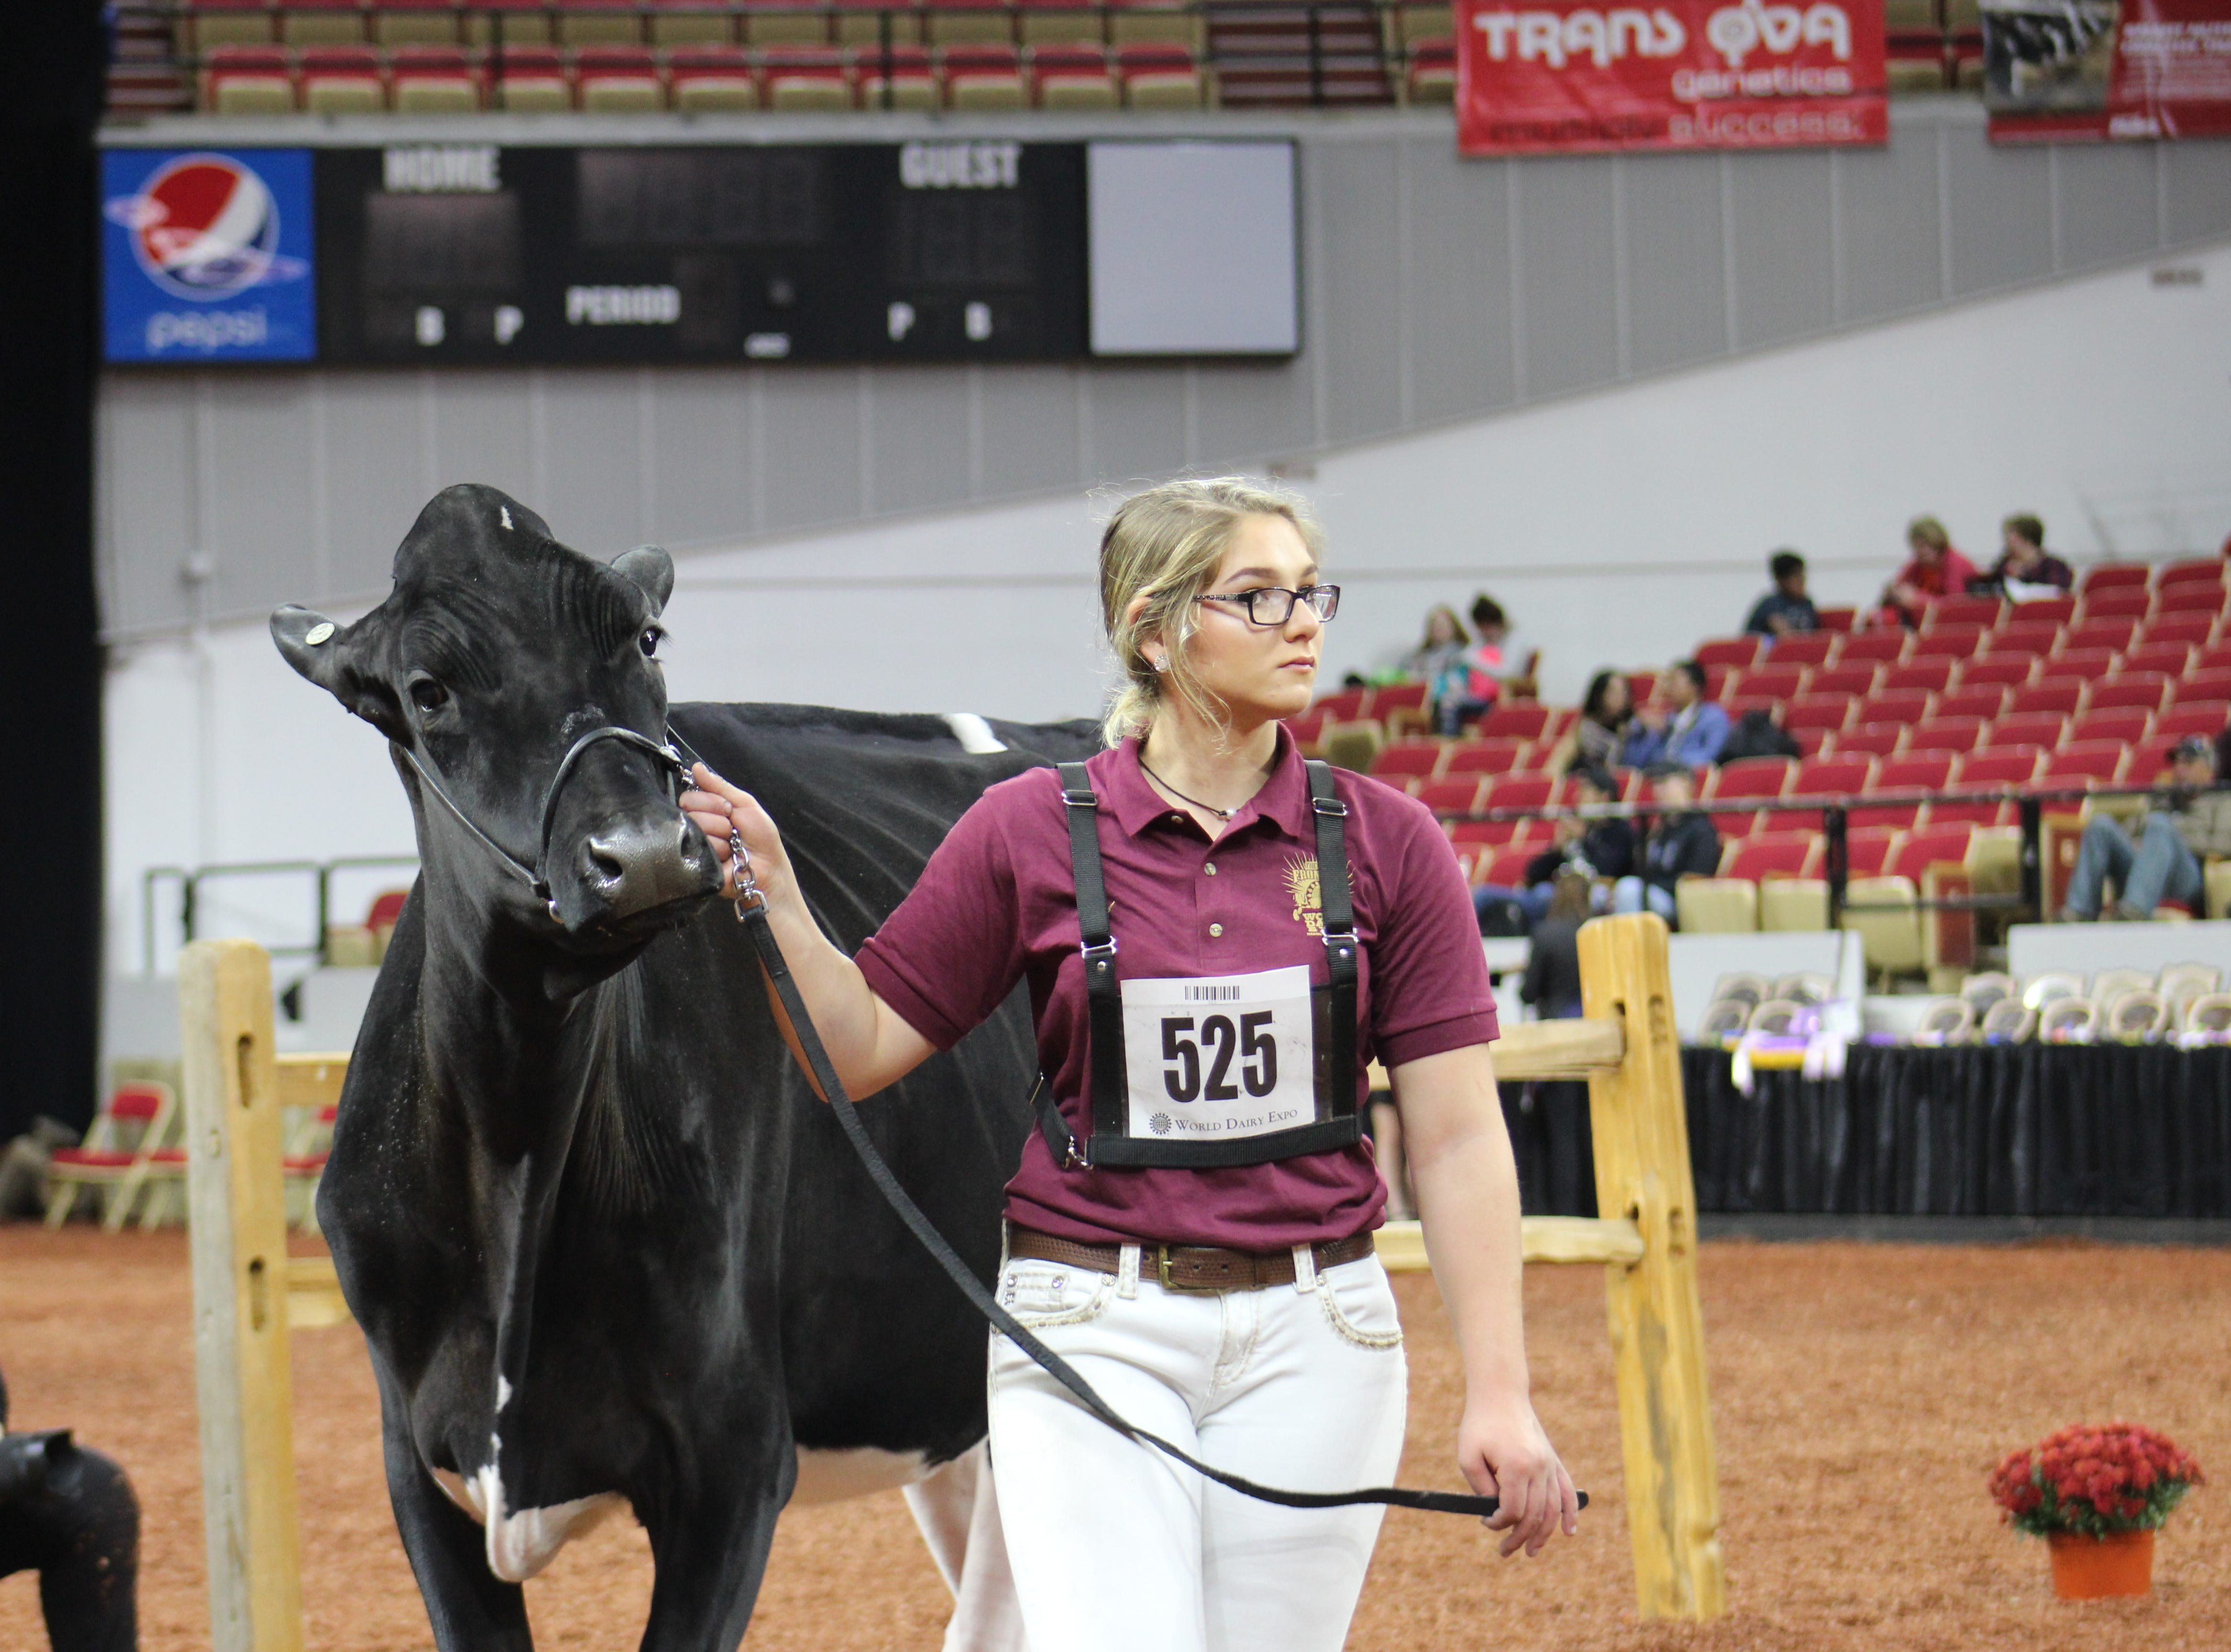 Taking a turn in the show ring.